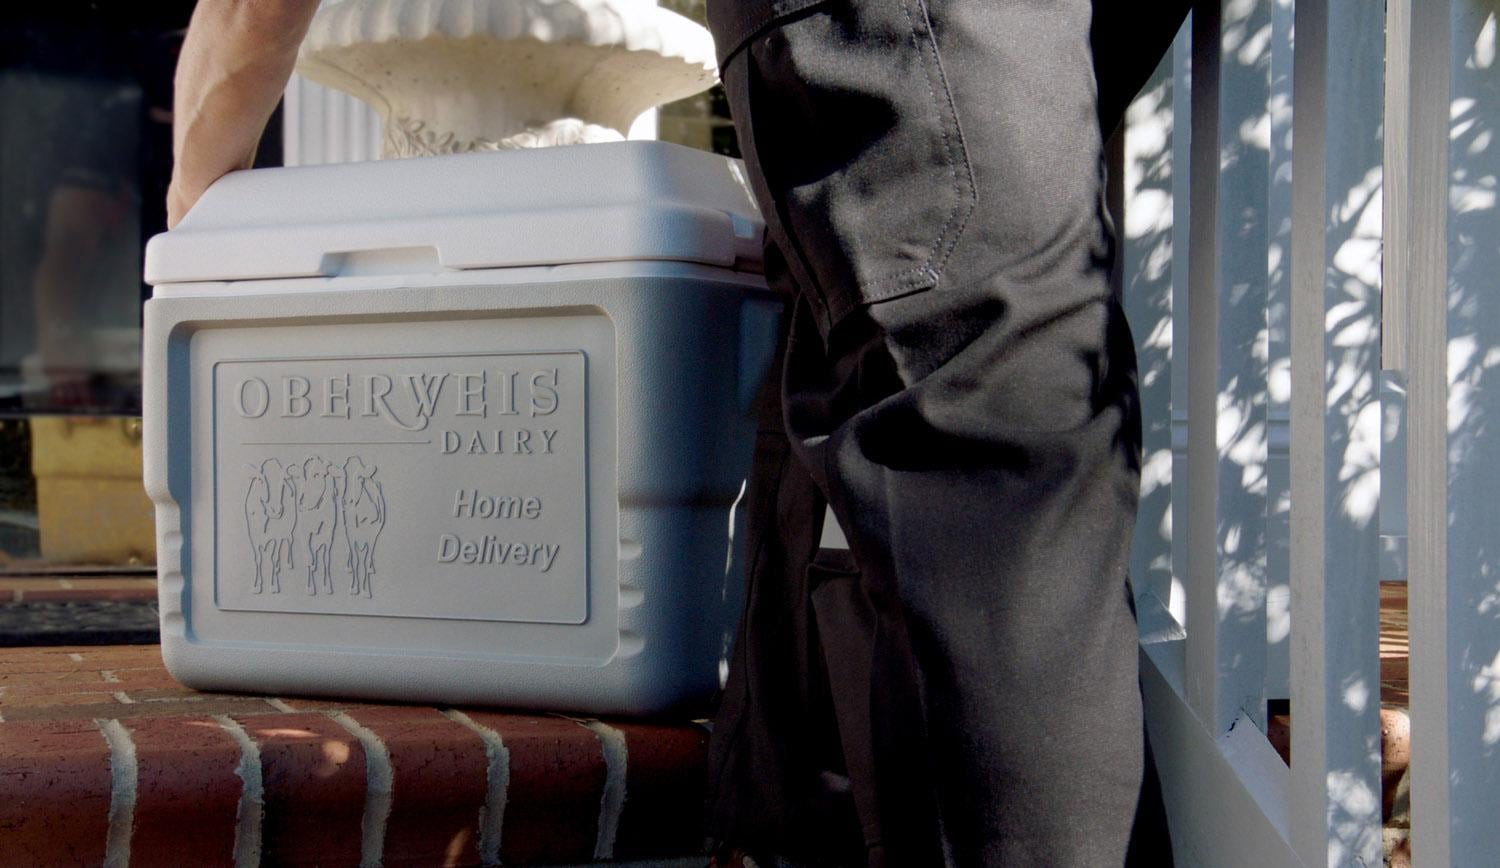 Oberweis delivery man placing cooler of milk on front porch